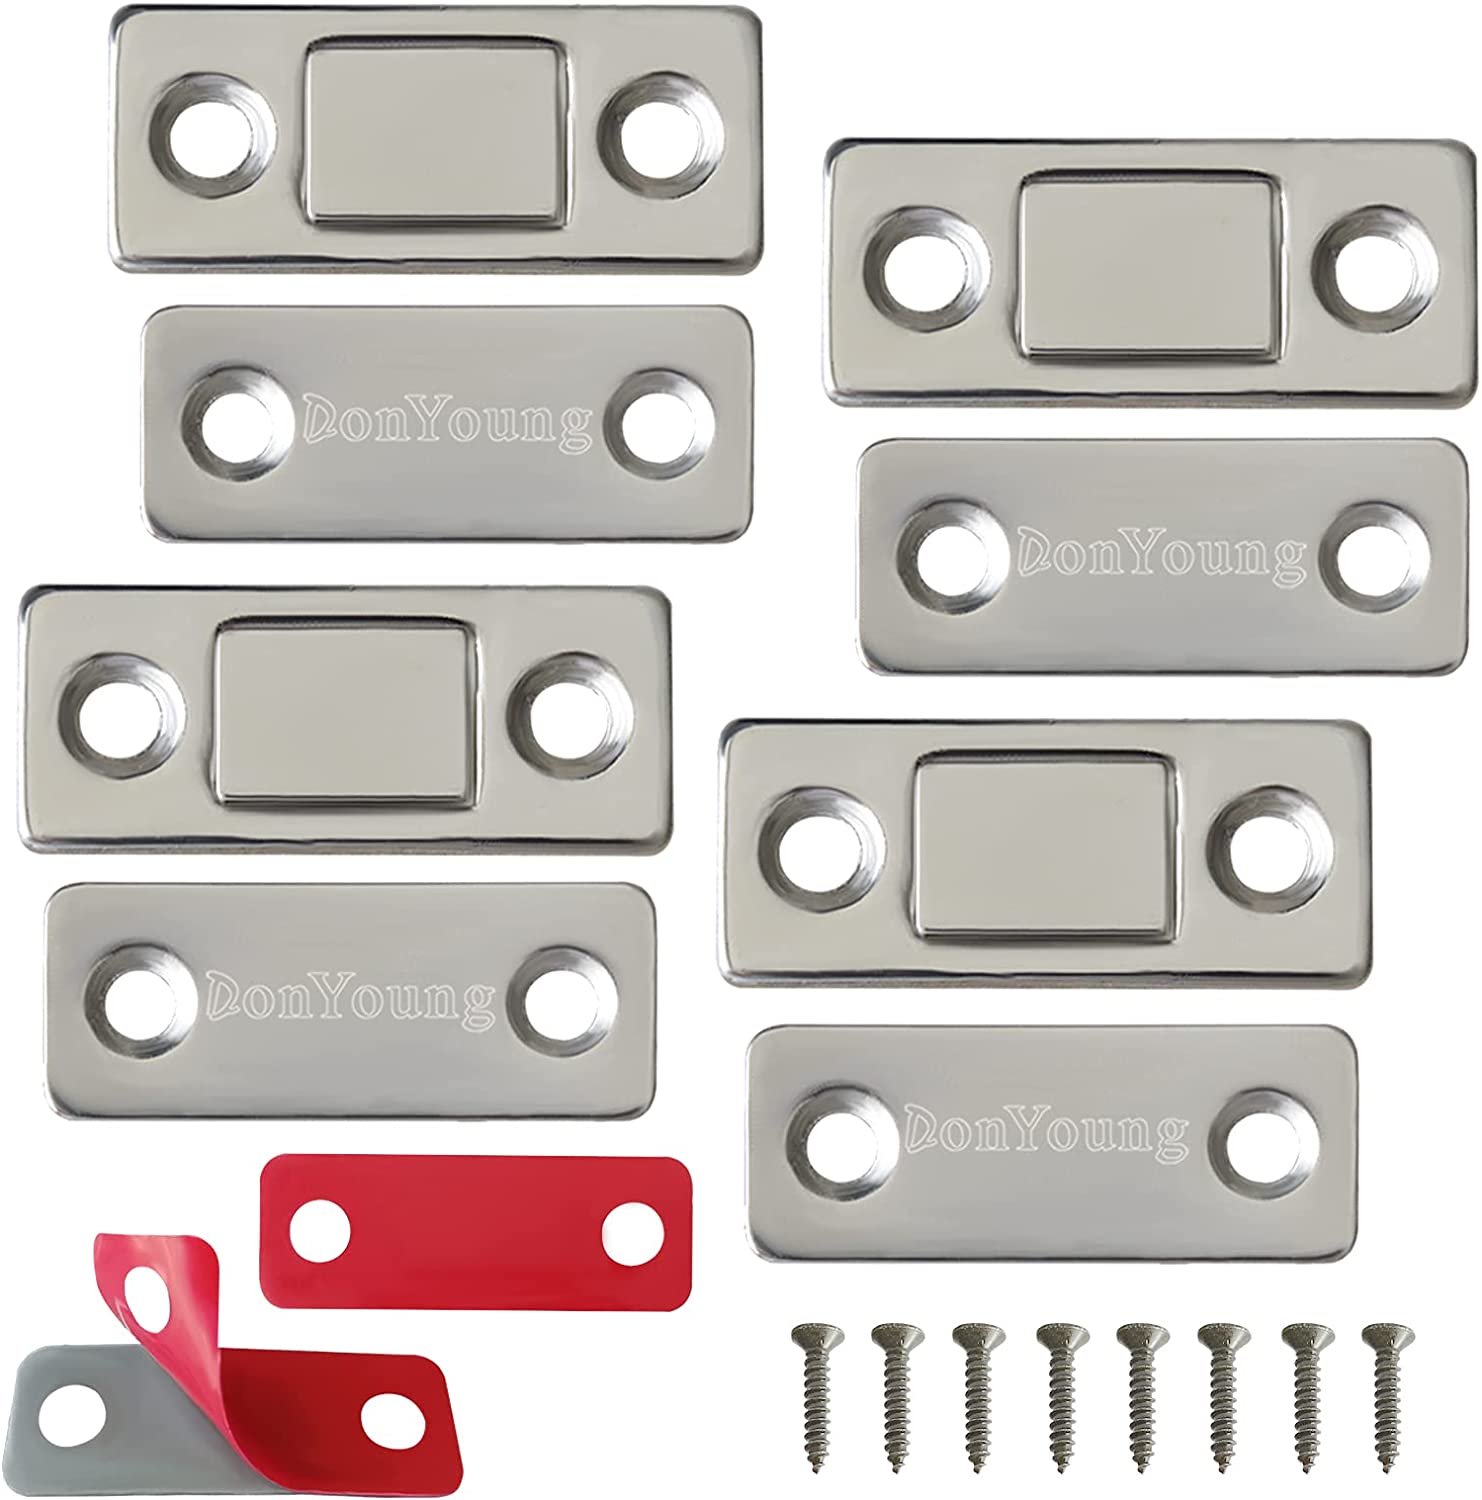 DonYoung Magnetic Door Catch Ranking integrated 1st place 4 Thin Ultra Cabinet Pack Regular dealer